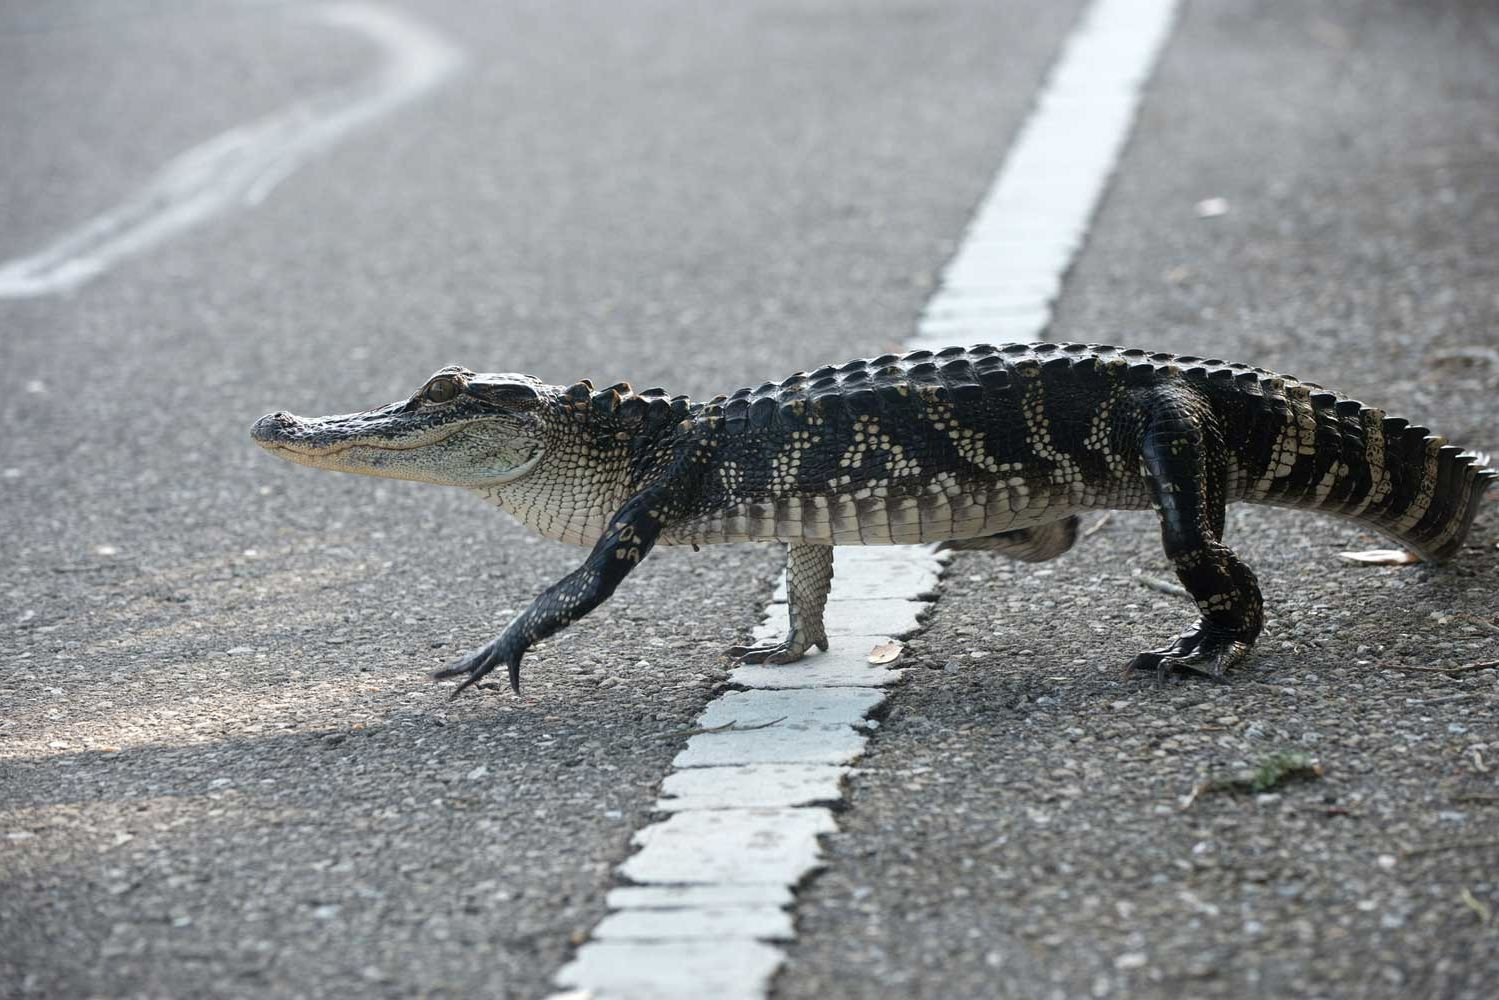 A Spirit Airlines Plane Had to Wait for an Alligator to Cross the Runway